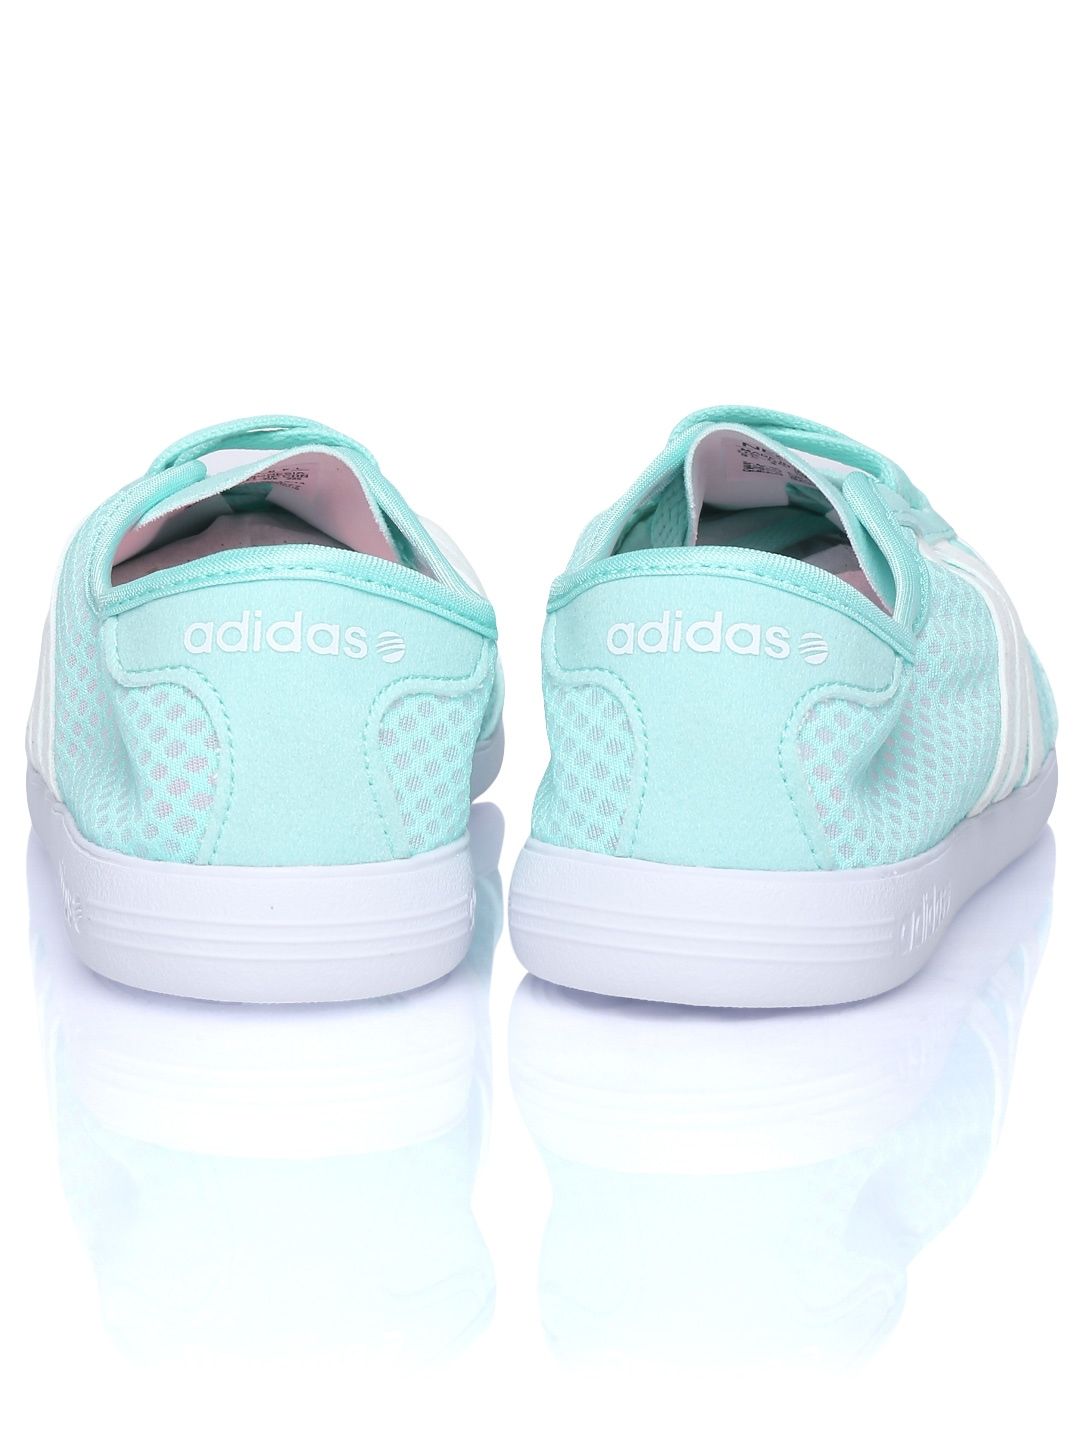 adidas flat shoes women,buy adidas online > OFF61% Free